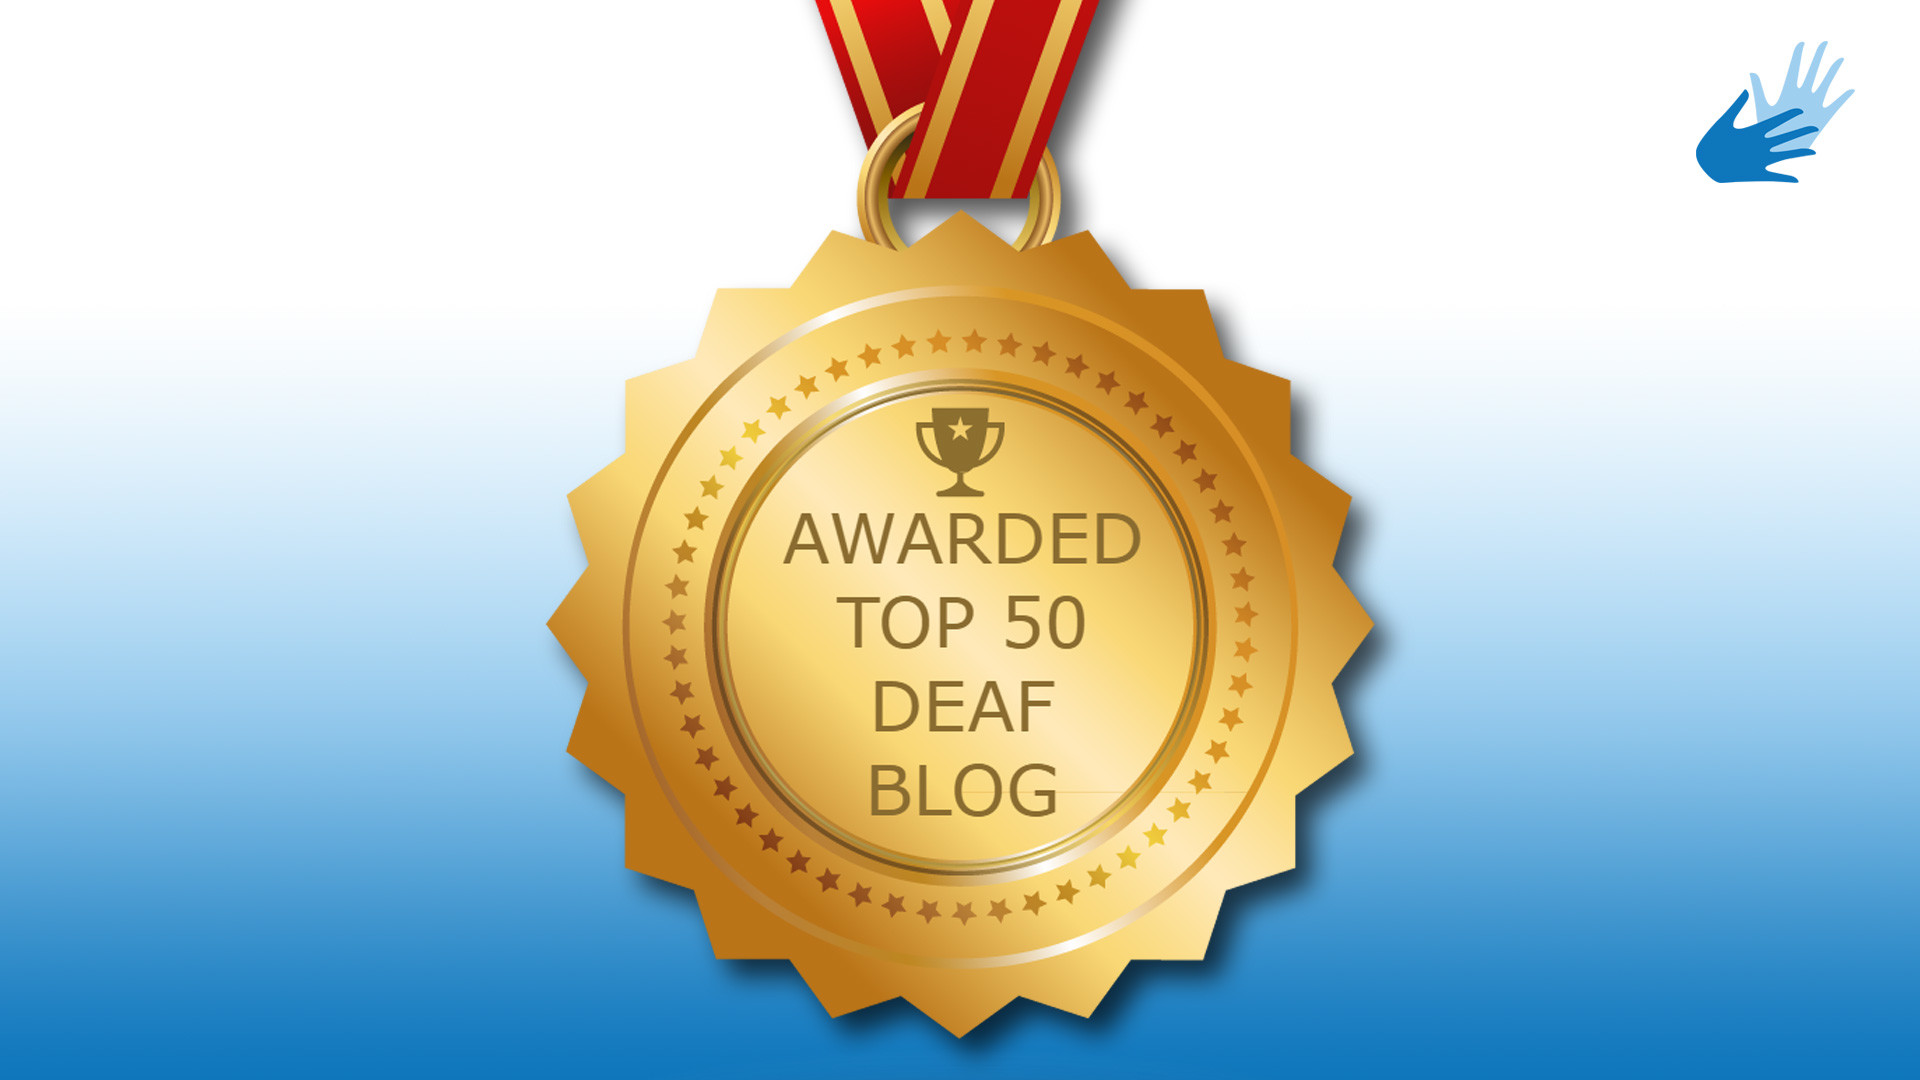 BDN-Top-50-Deaf-Blog-Badge-06-2017